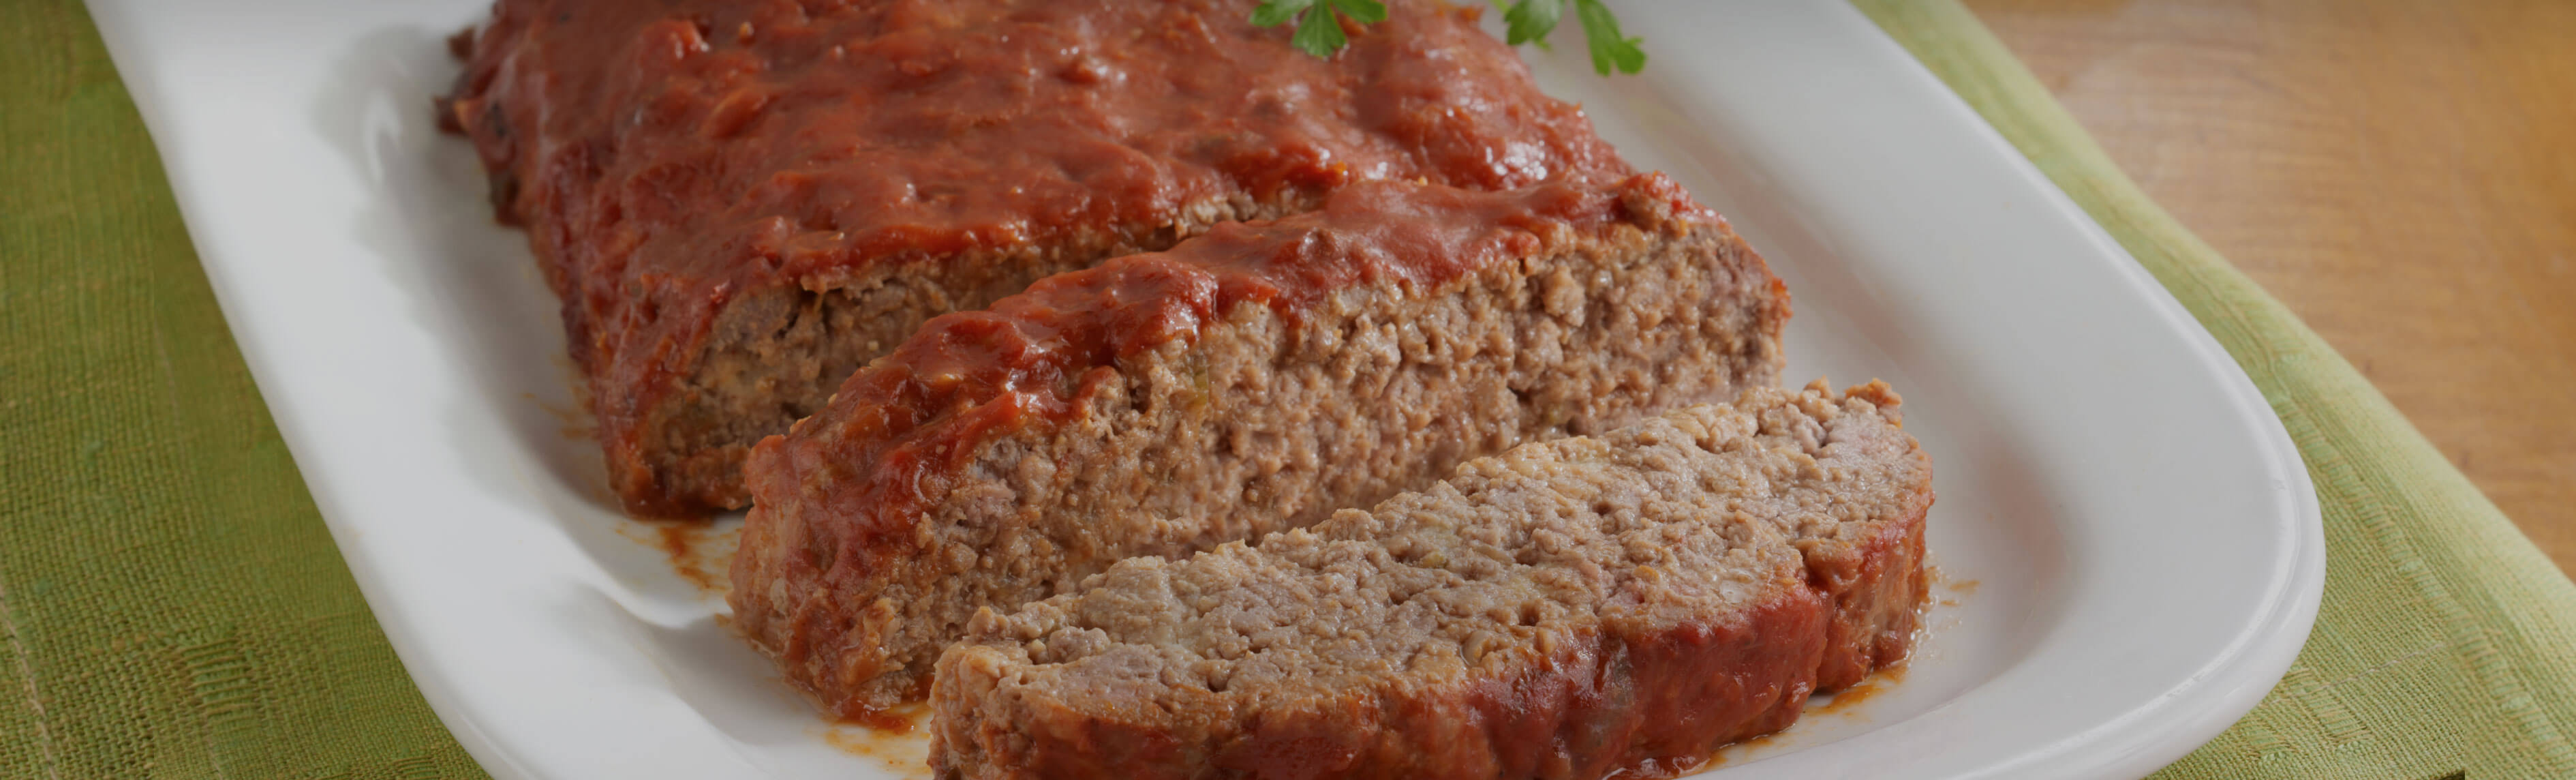 Saucy Meatloaf